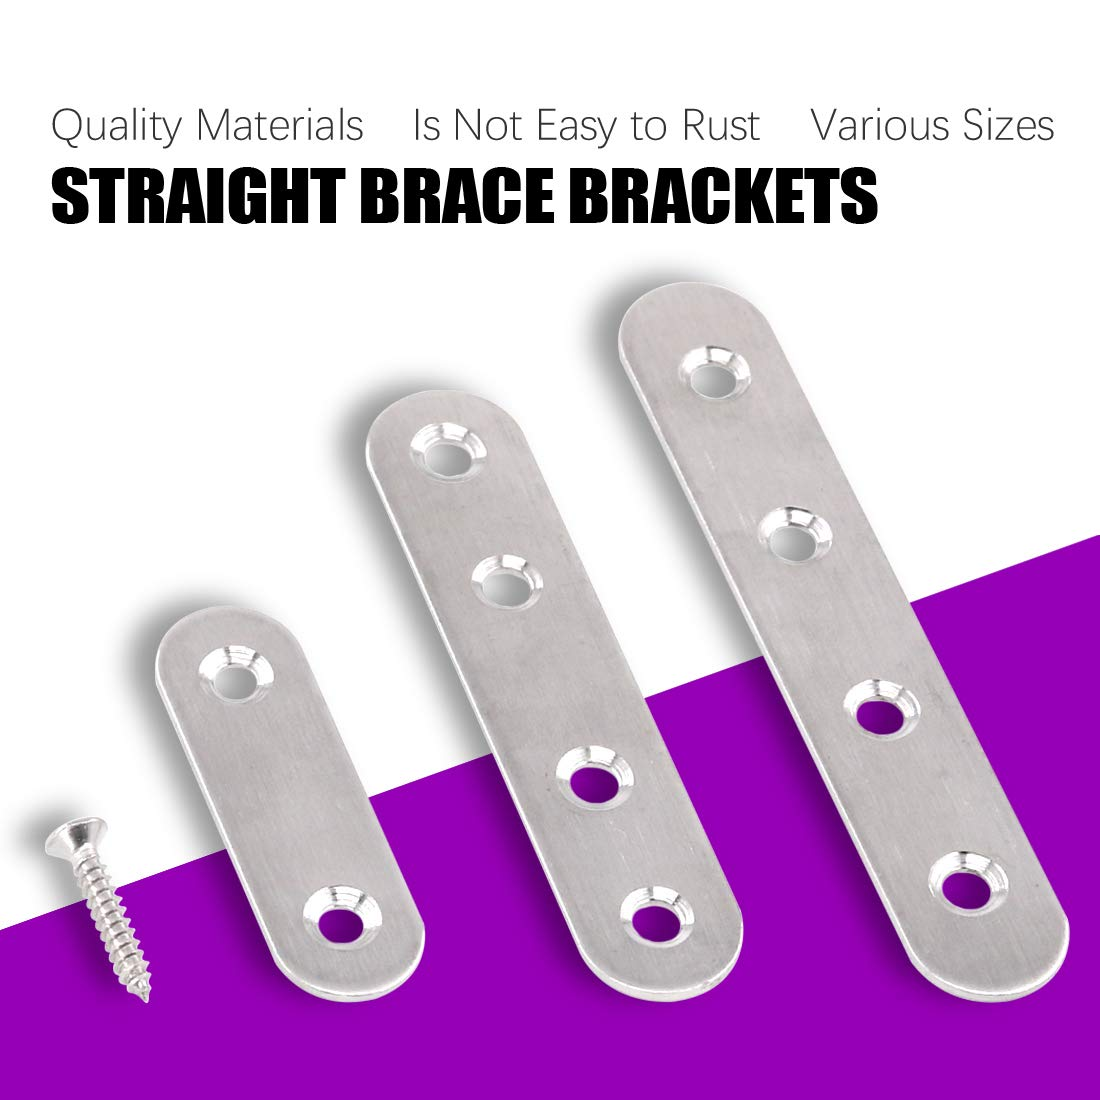 Swpeet 115Pcs 3 Sizes Stainless Steel Flat Straight Brace Brackets Metal Shelf Support Brackets Joining Plate with Screws Perfect for Mending Repair Plates Fixing Bracket Connector 50mm// 80mm// 100mm